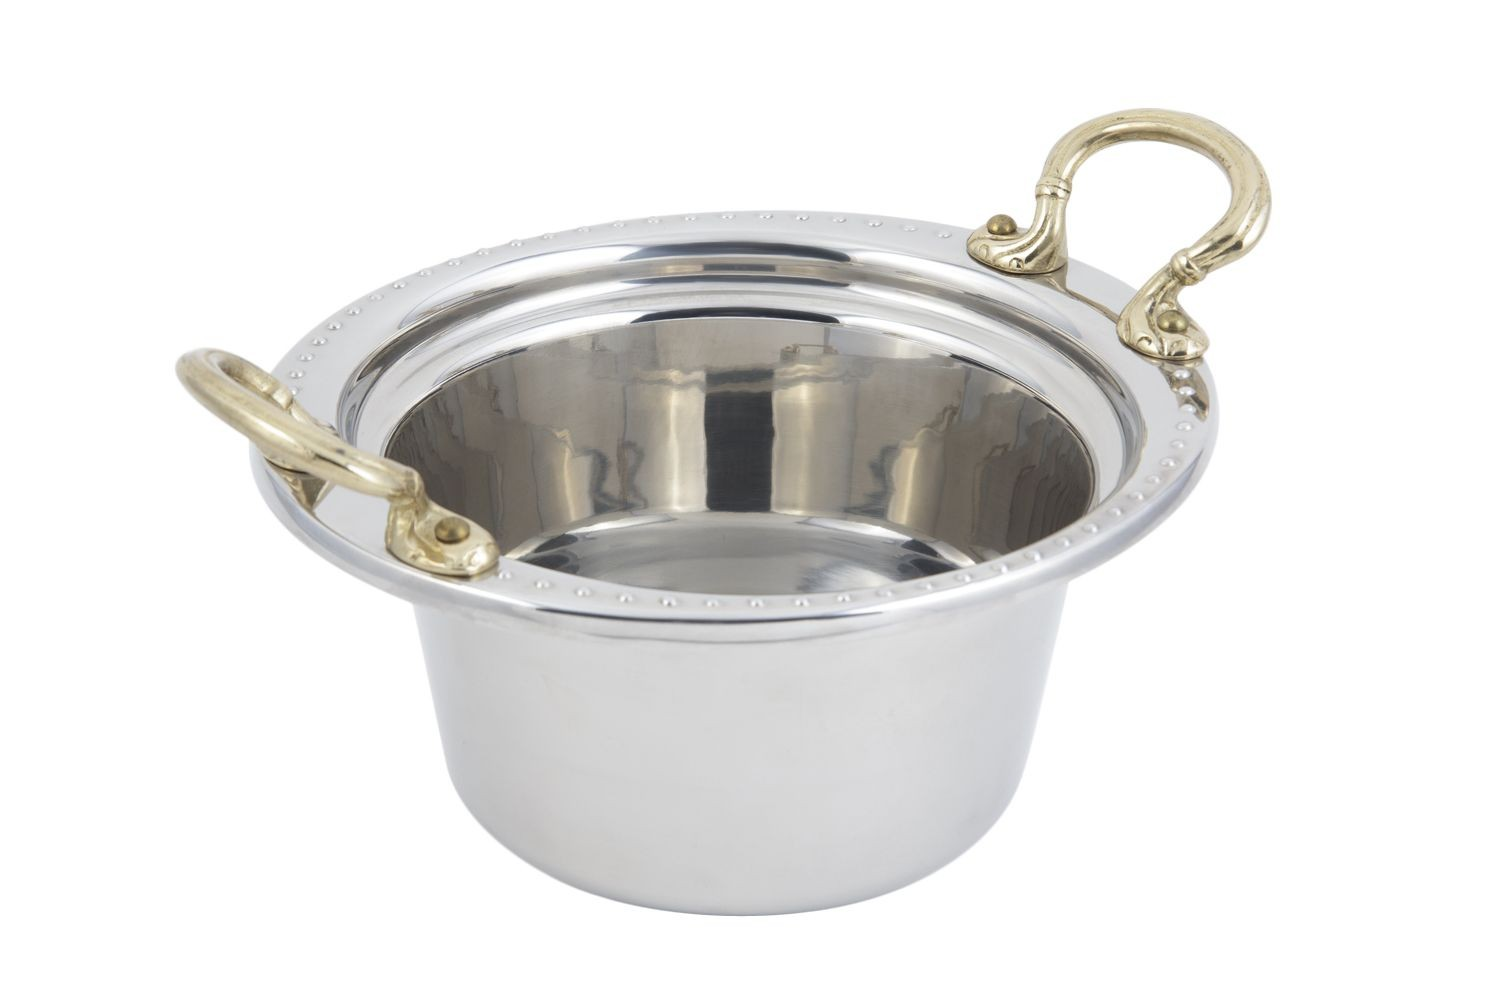 Bon Chef 5350HR Bolero Design Casserole Dish with Round Brass Handles, 2 Qt.